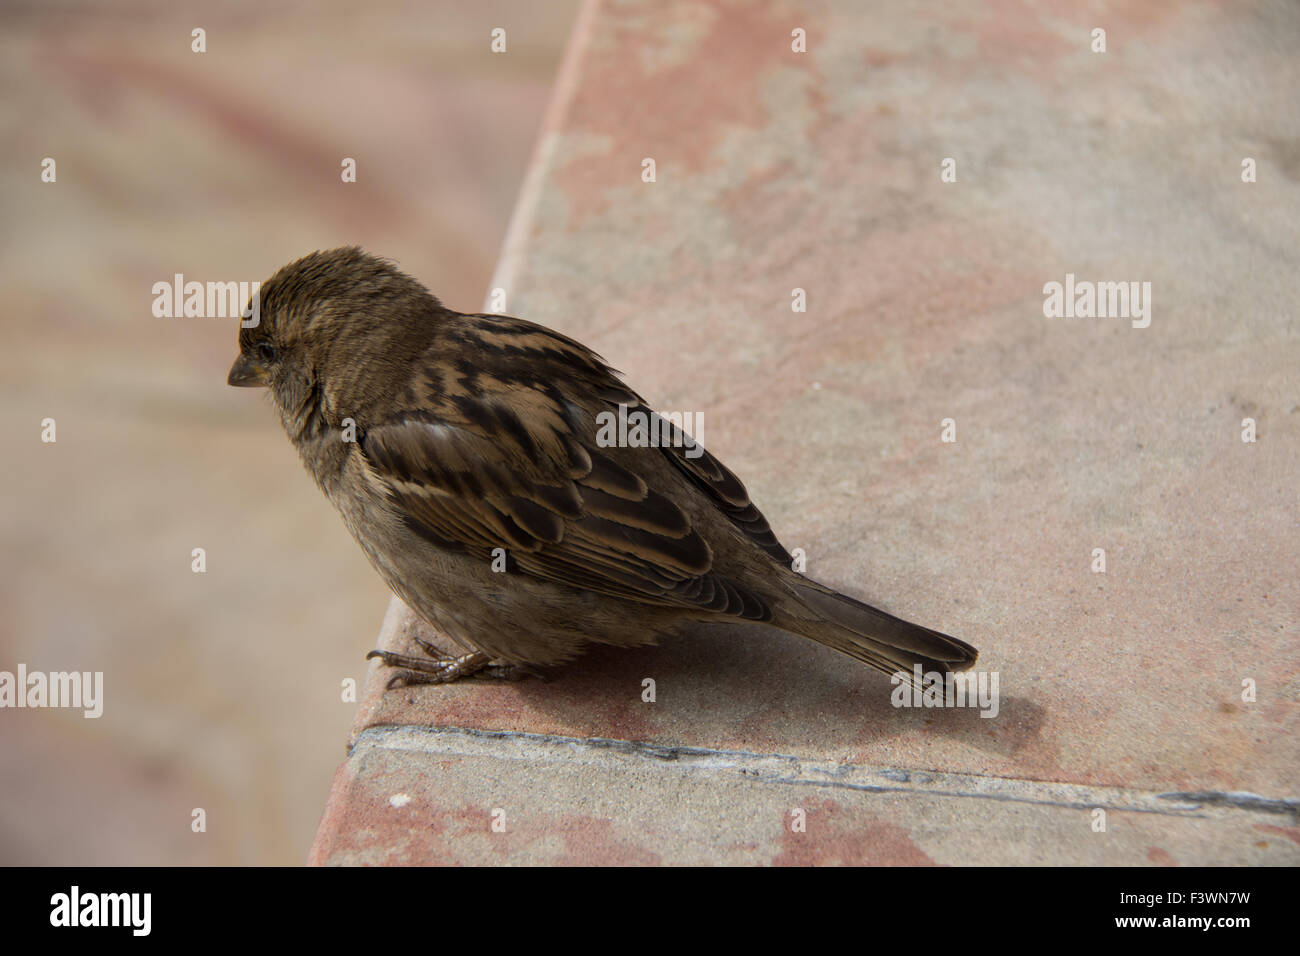 a small brown bird